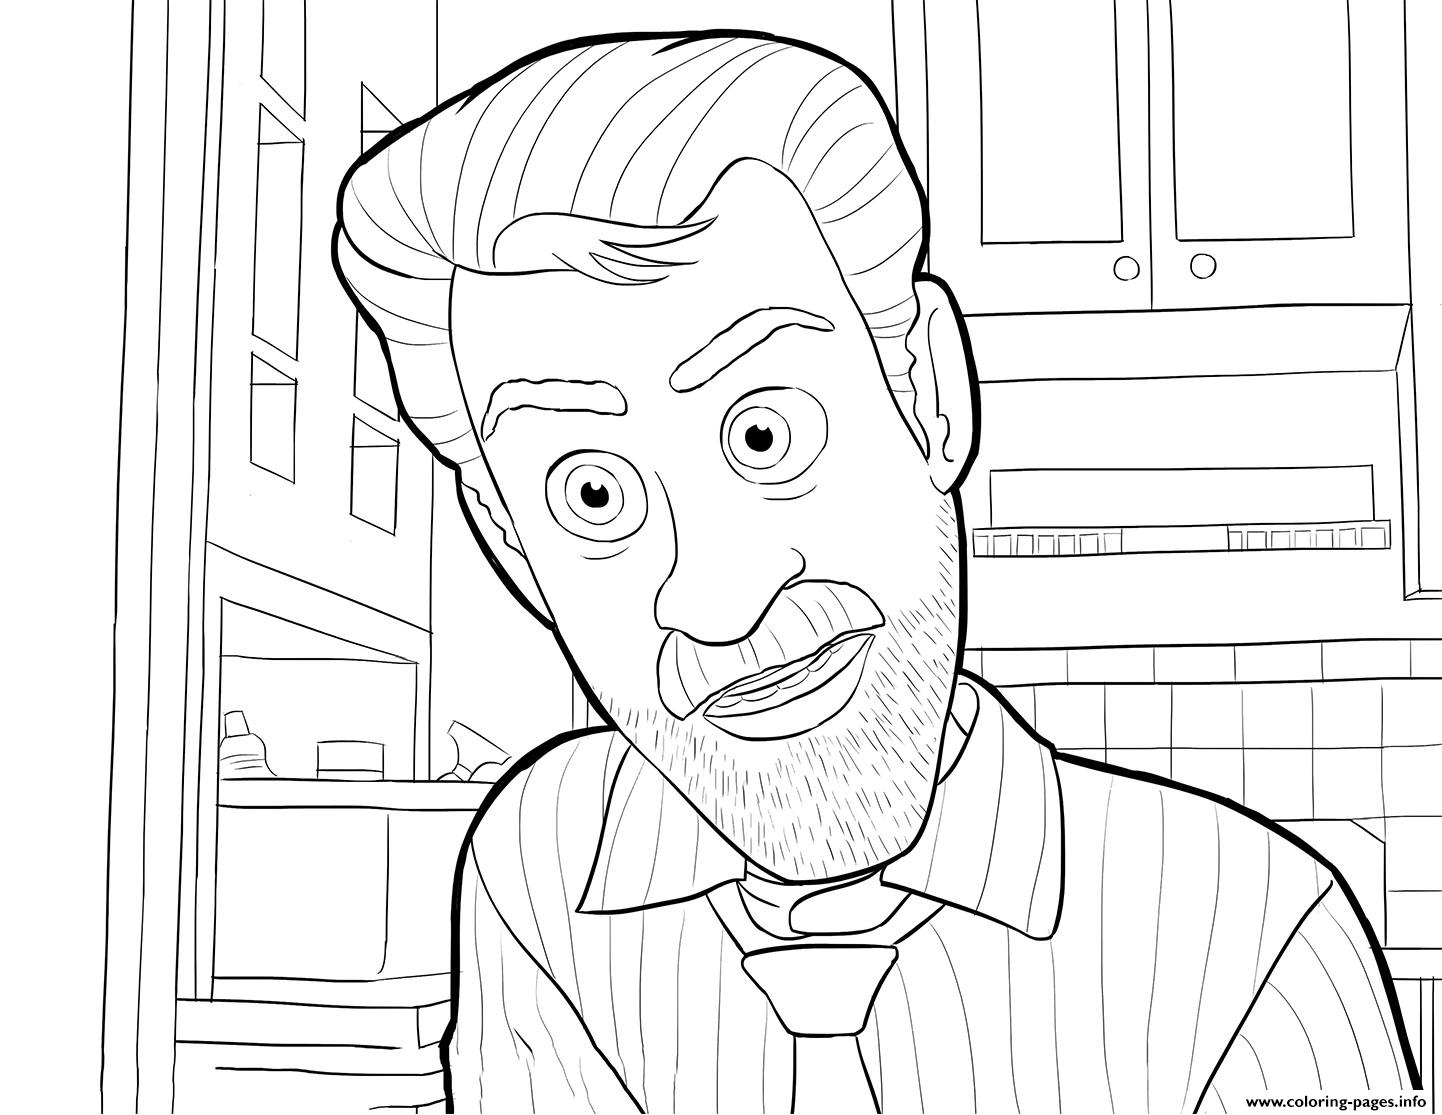 Riley Dad Inside Out Coloring Pages Printable